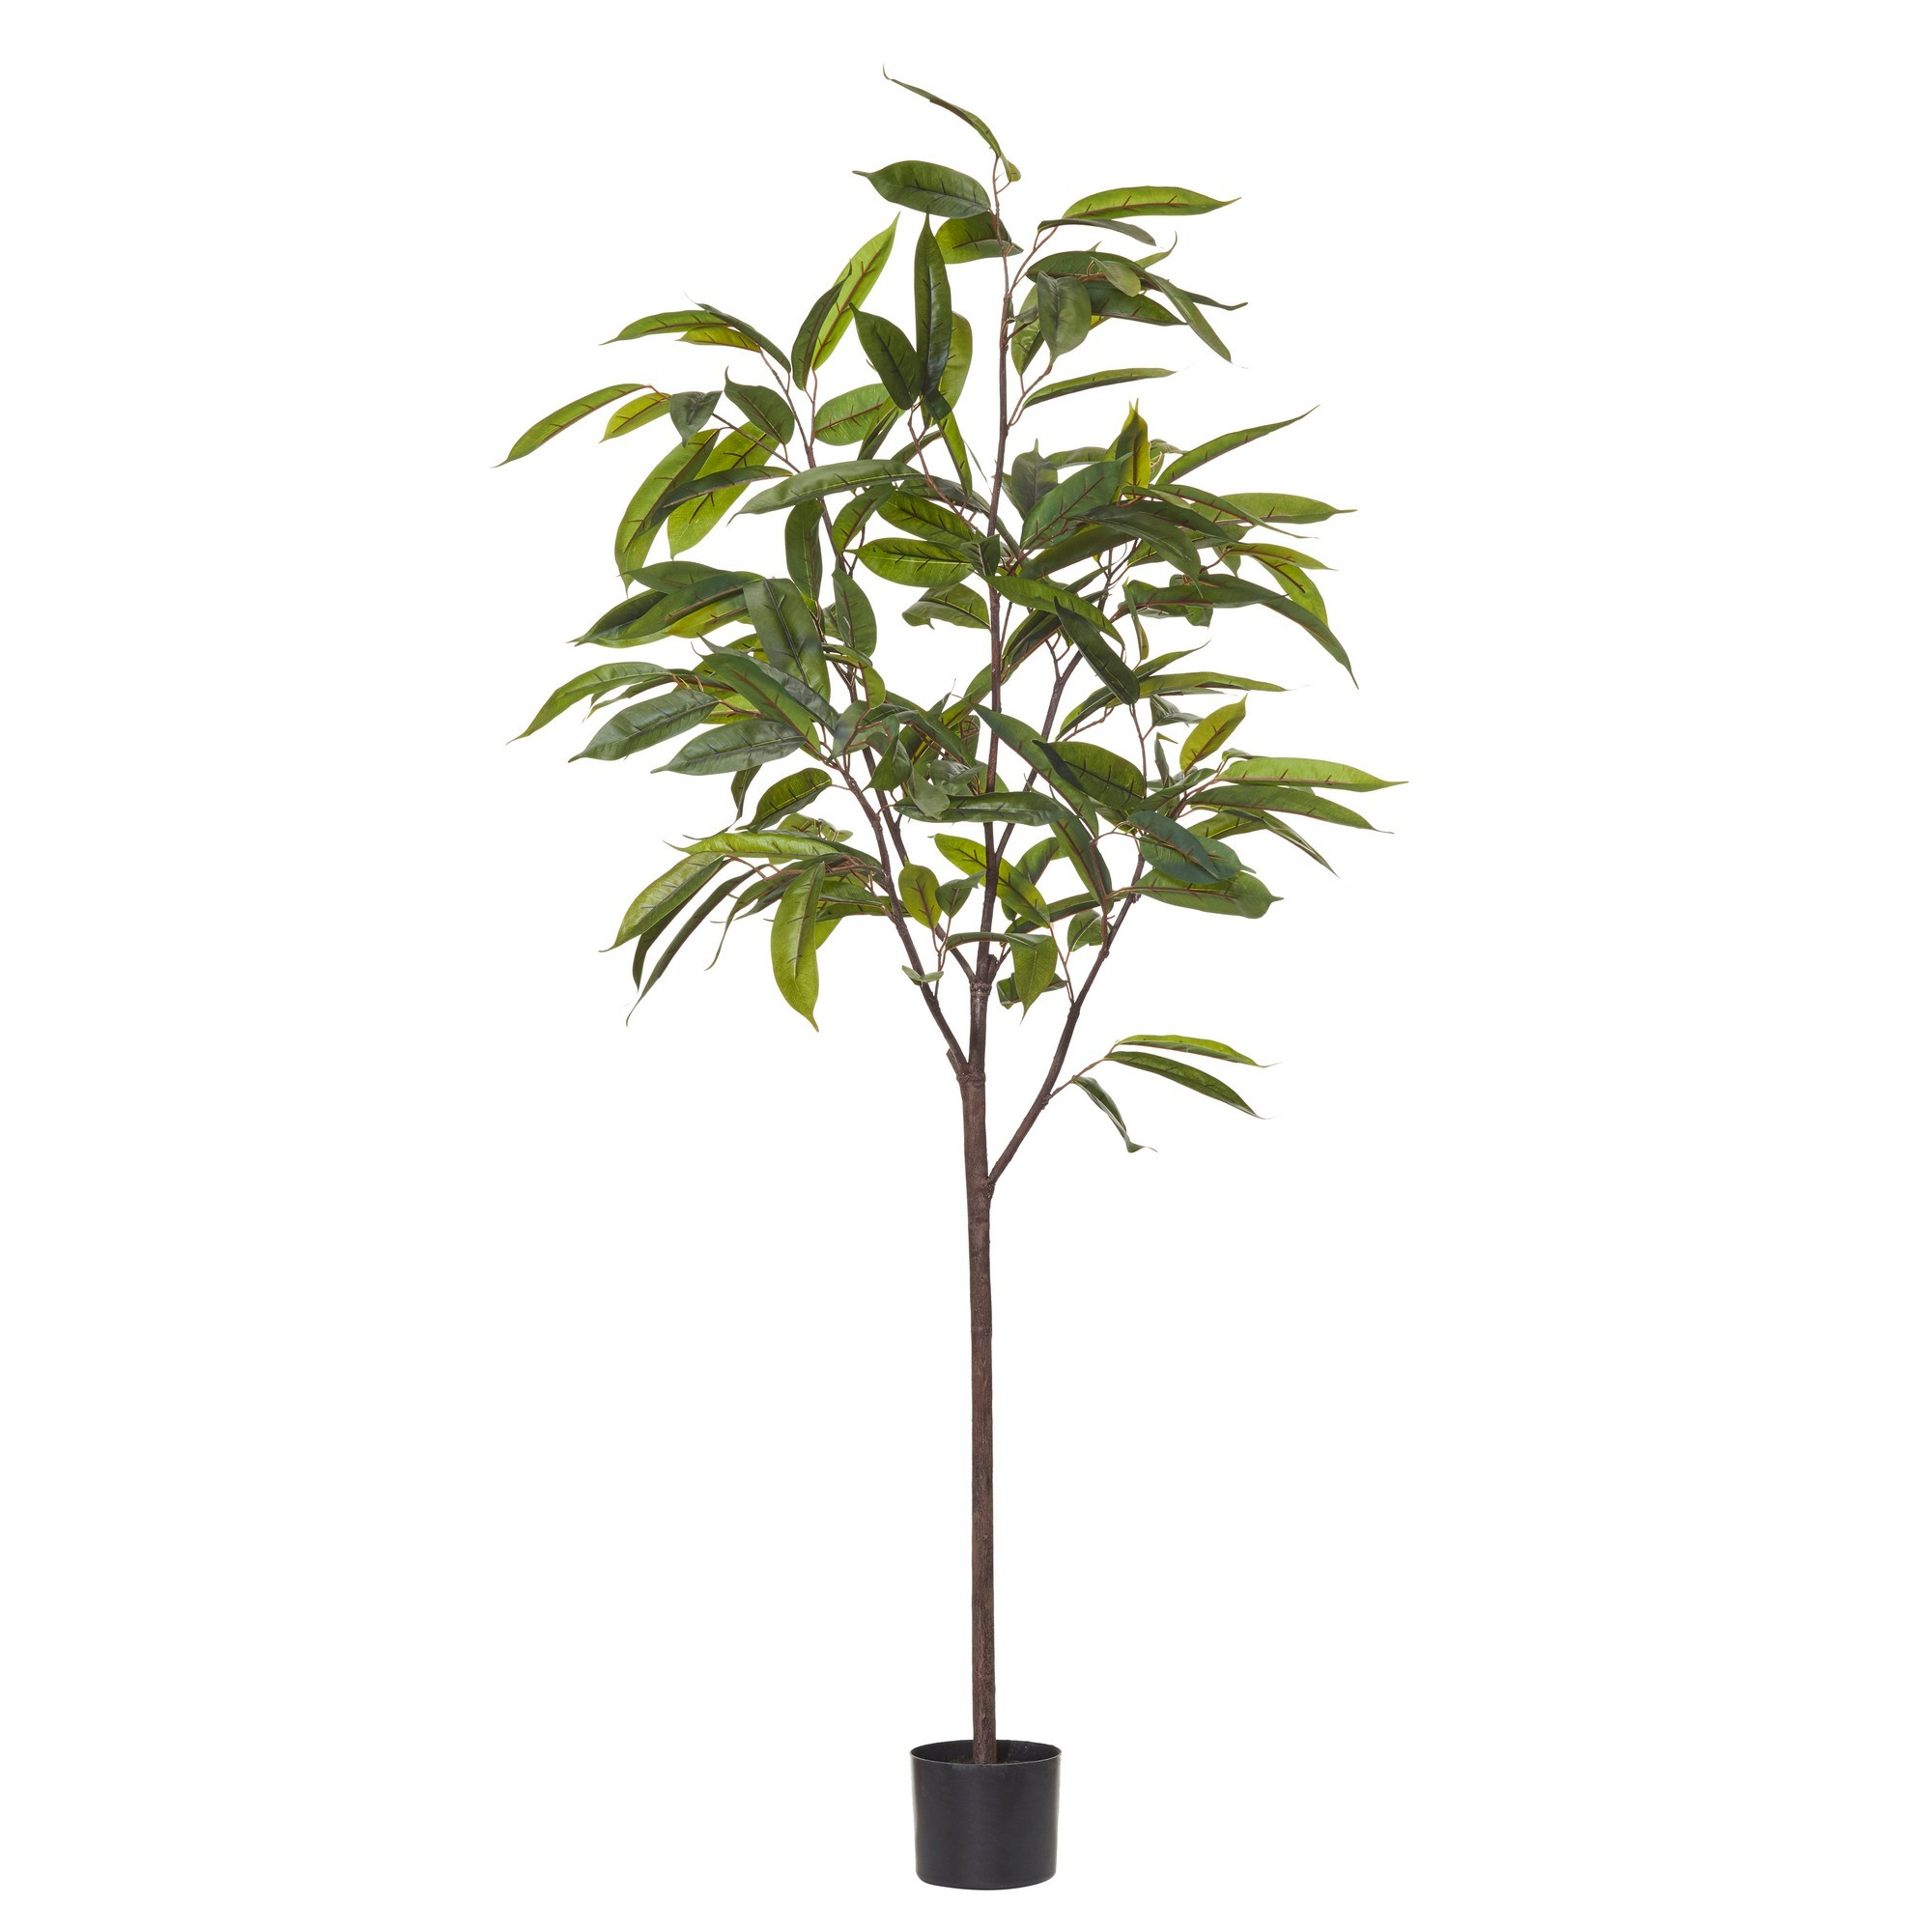 Potted Artificial Ficus Alli Tree, 180cm